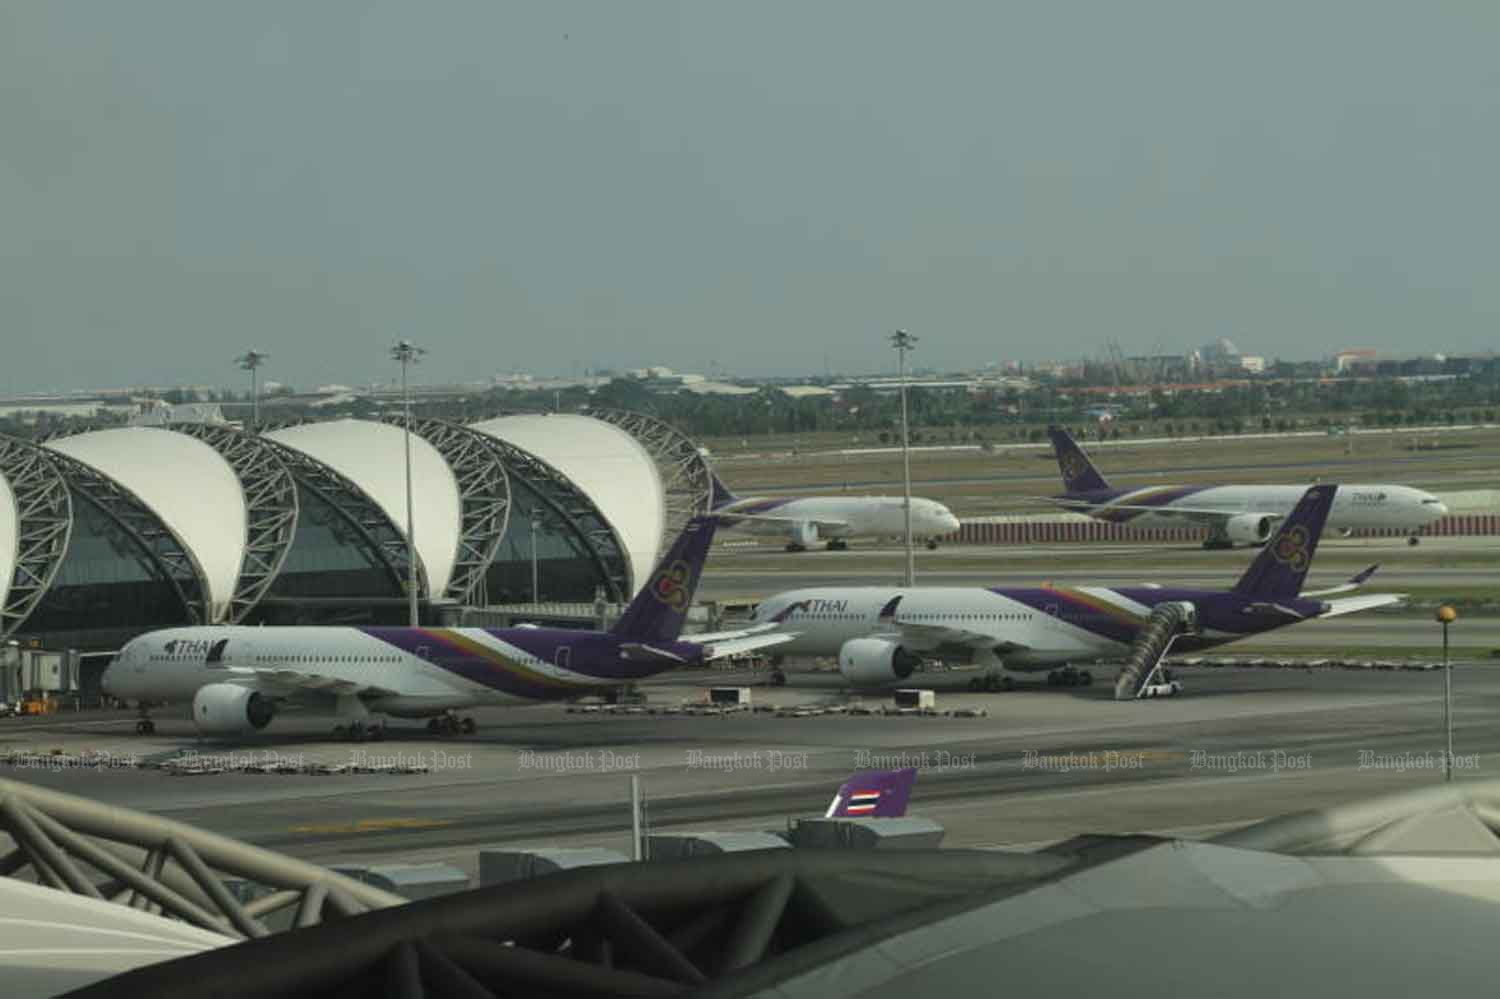 Aircraft are parked at Suvarnabhumi airport due to Covid-19. (Photo by Nutthawat Wicheanbut)